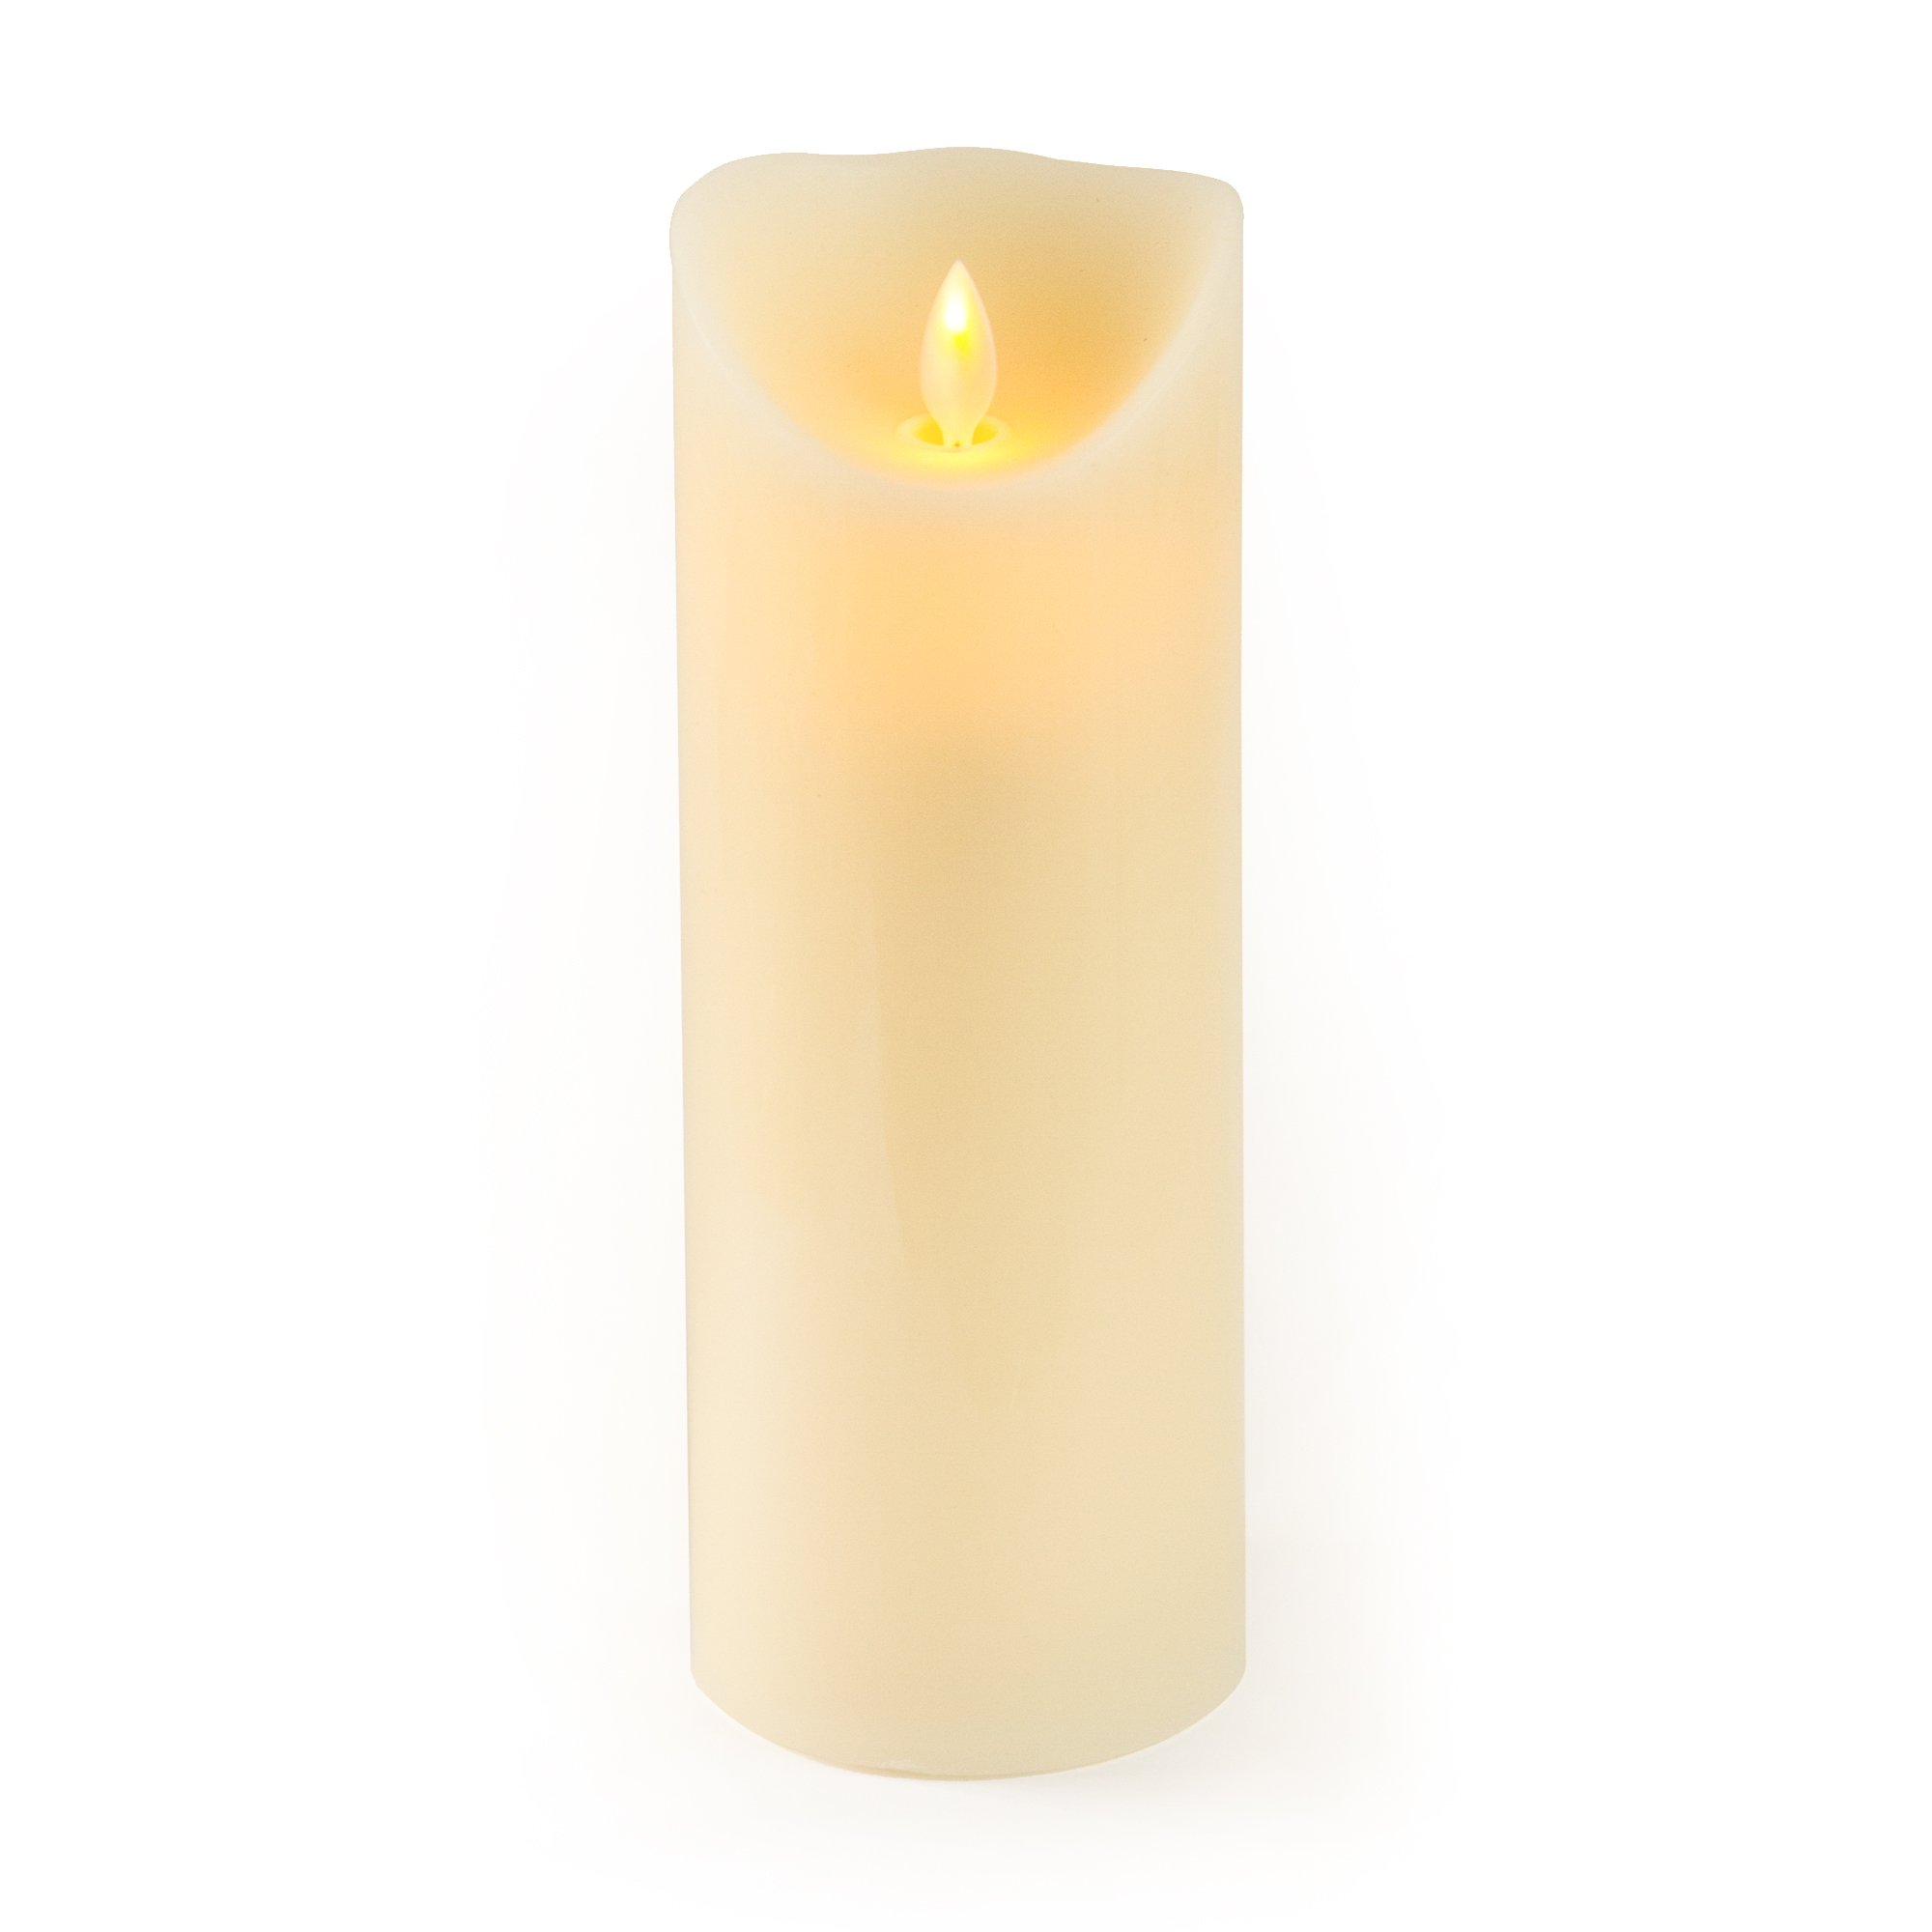 Gideon 9 Inch Flameless LED Candle - Real Wax & Real Flickering Candle Motion - with Multi-Function Remote (On/Off, Timer, Dimmer) - Vanilla Scented, Ivory